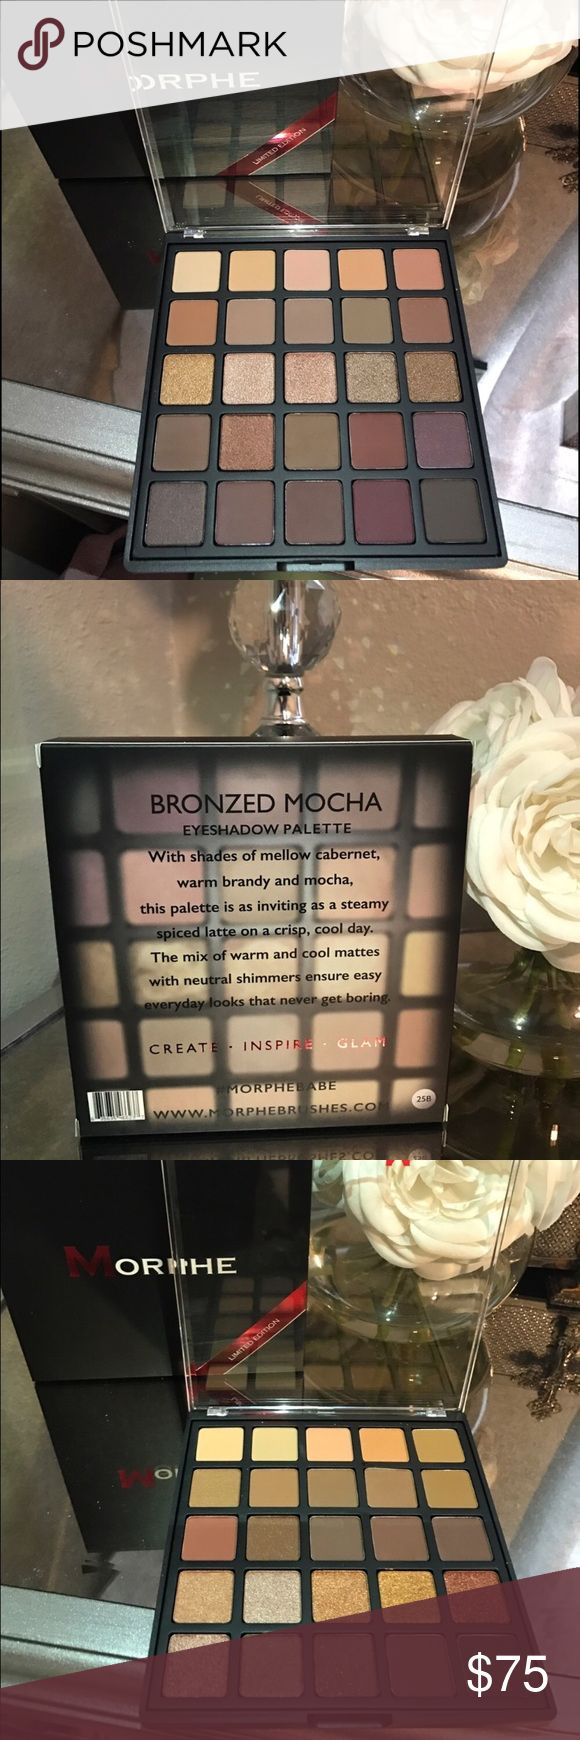 Morphe Copper Spice $ bronzed mocha pallets Brand New In Box!! Only taken out to take pictures. These items are SOLD OUT and are LIMITED EDITION! 100% Authentic. My last set of 4 that I had. Make sure to get yours before it's gone. Good luck Poshers!!!! morphe Makeup Eyeshadow